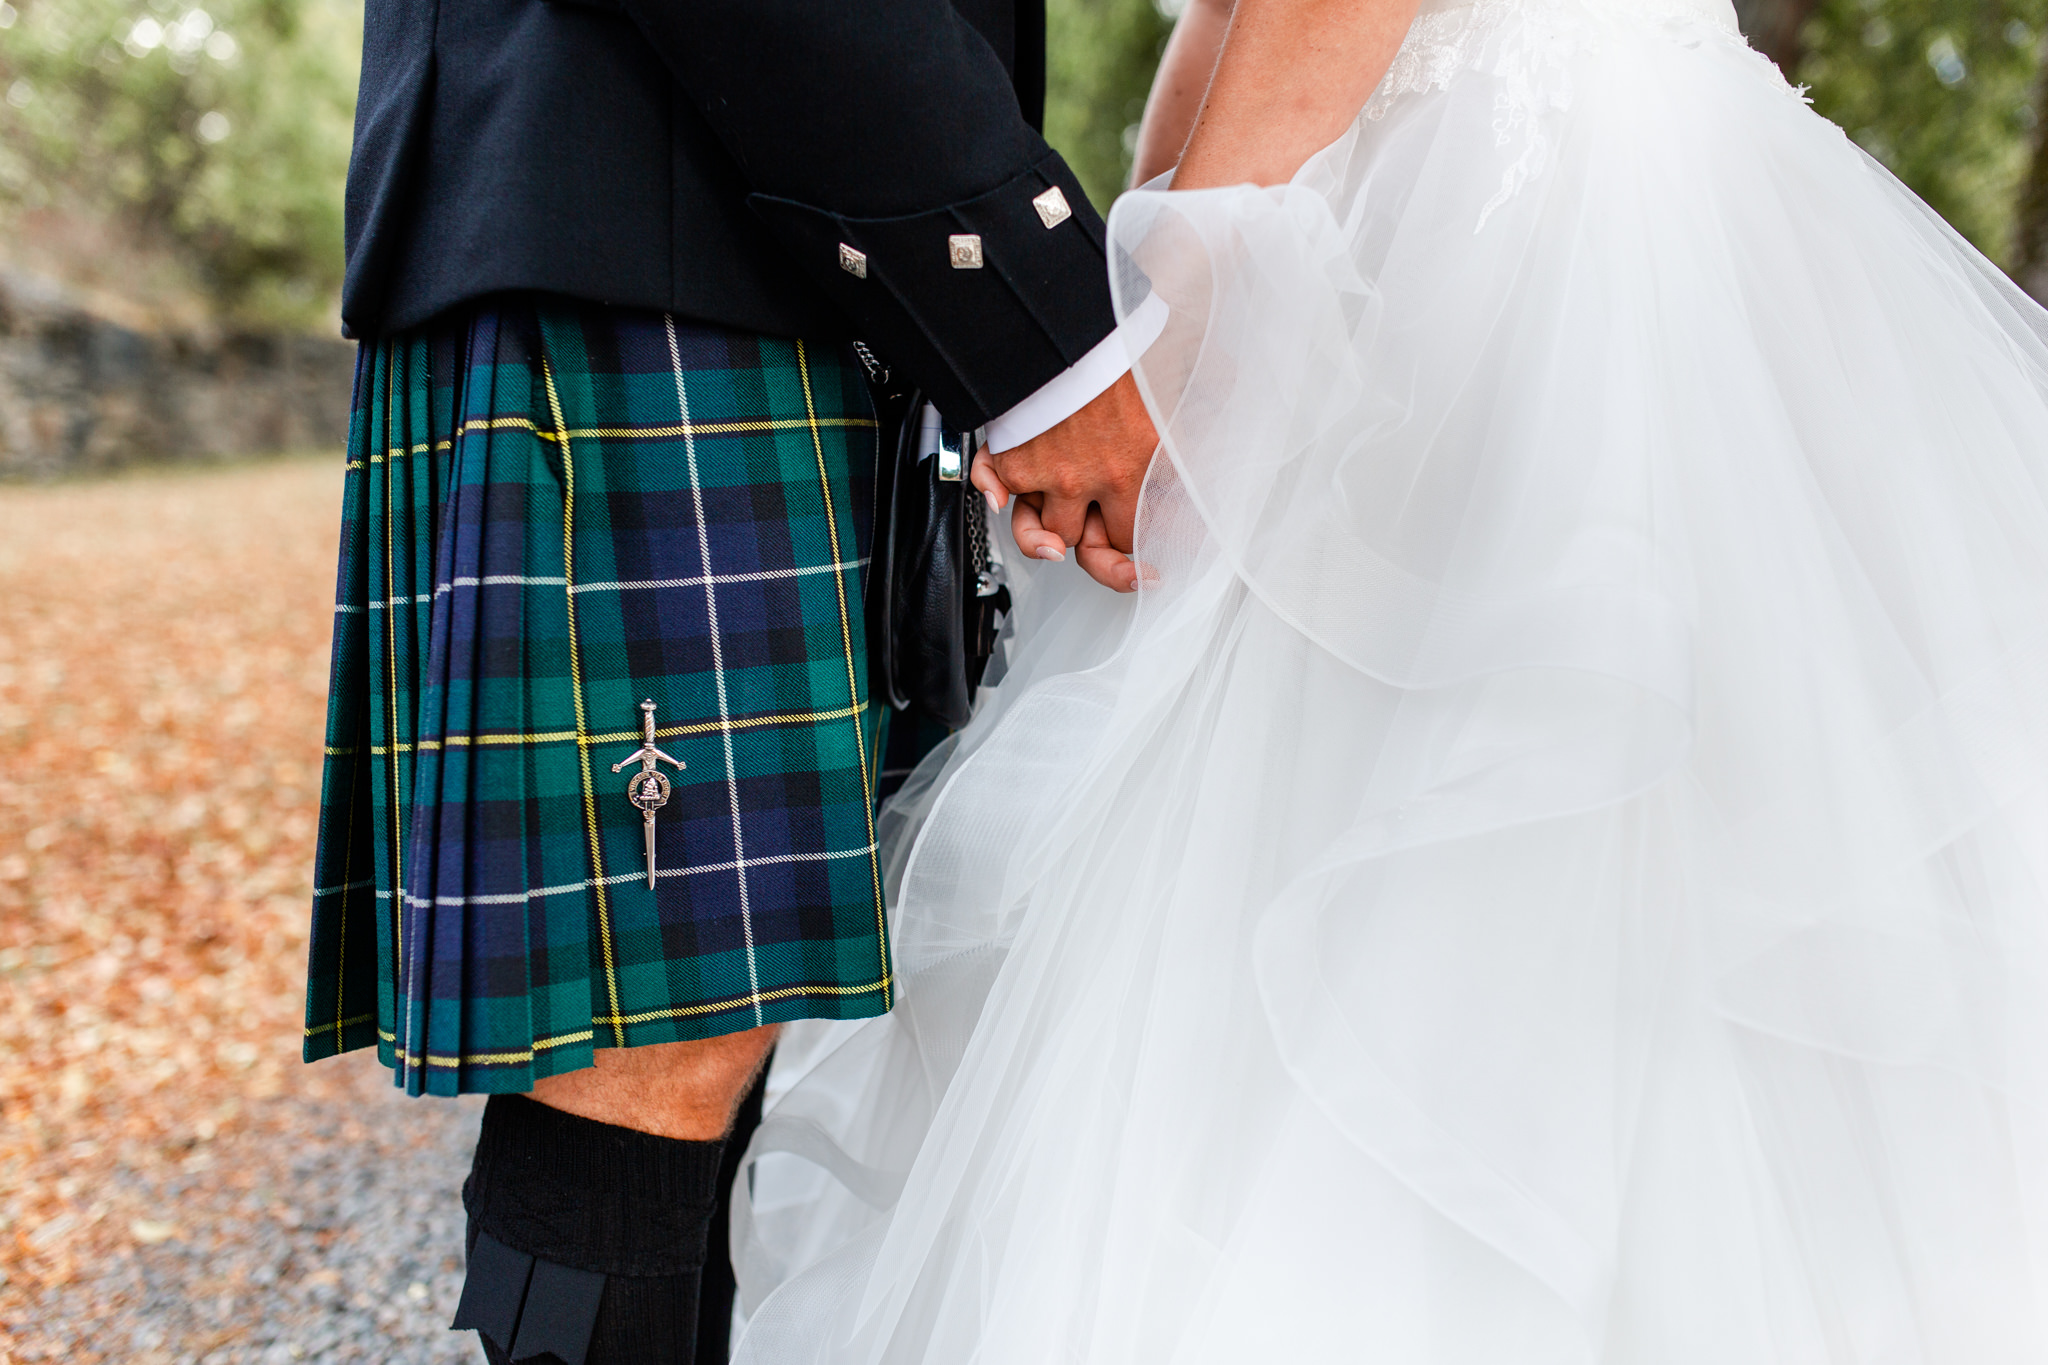 Scottish wedding at Mauritzberg Castle at Vikbolandet